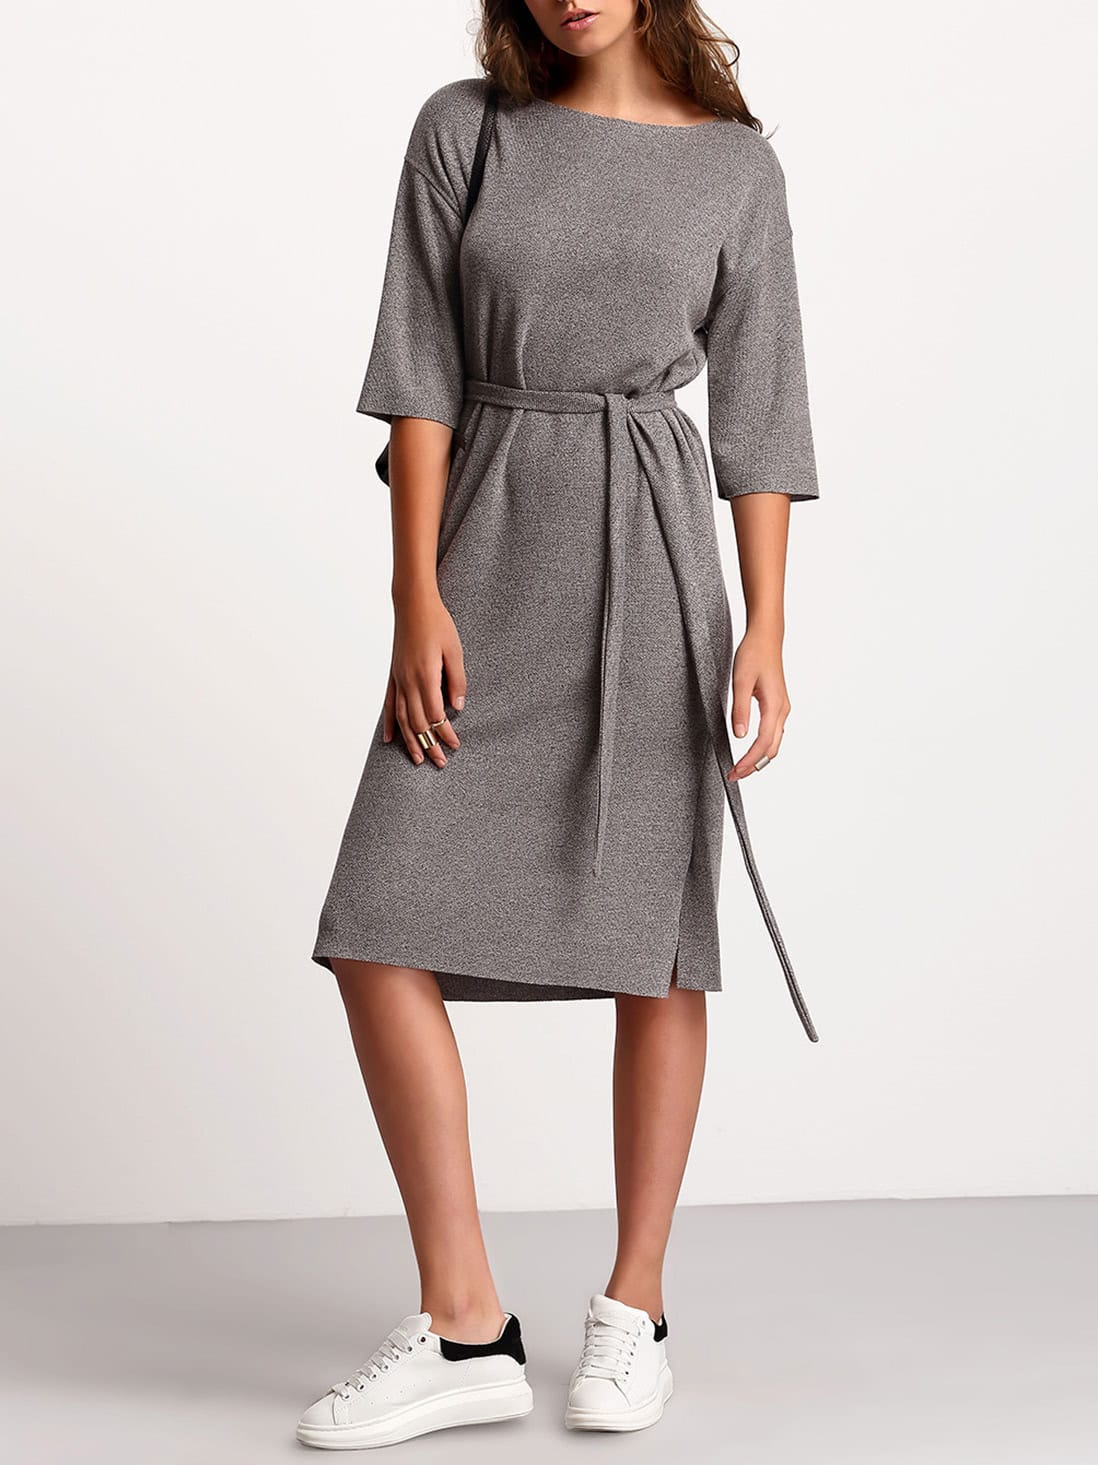 Grey Crew Neck Tie Waist DressGrey Crew Neck Tie Waist Dress<br><br>color: Grey<br>size: one-size